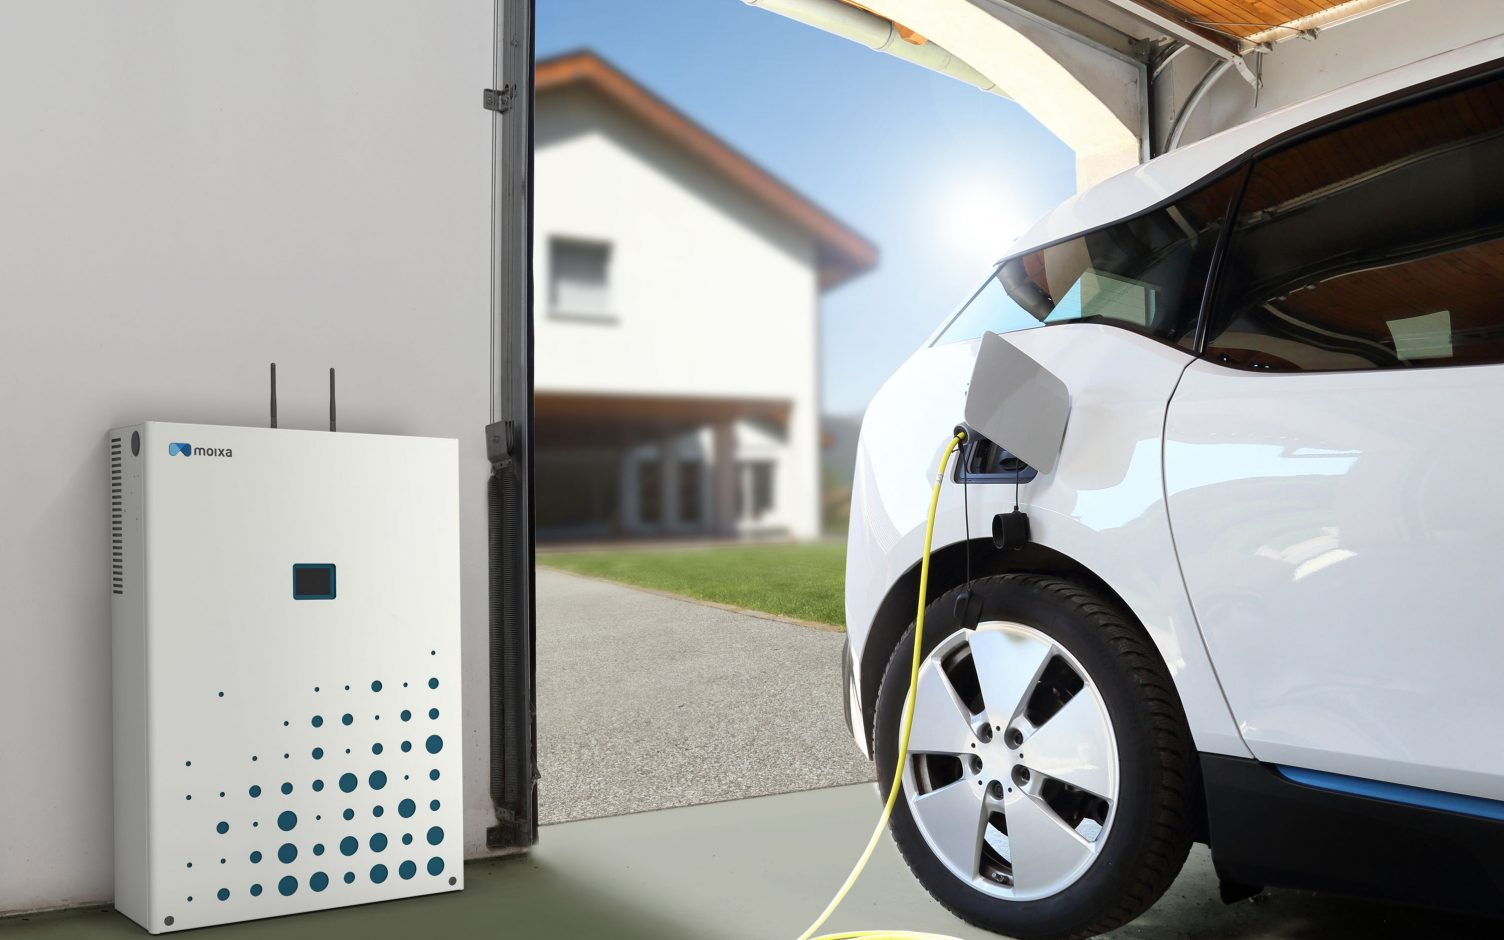 The shift to electrification of vehicles is one of several factors putting pressure on the grid that VPPs can help alleviate. Image: Moixa